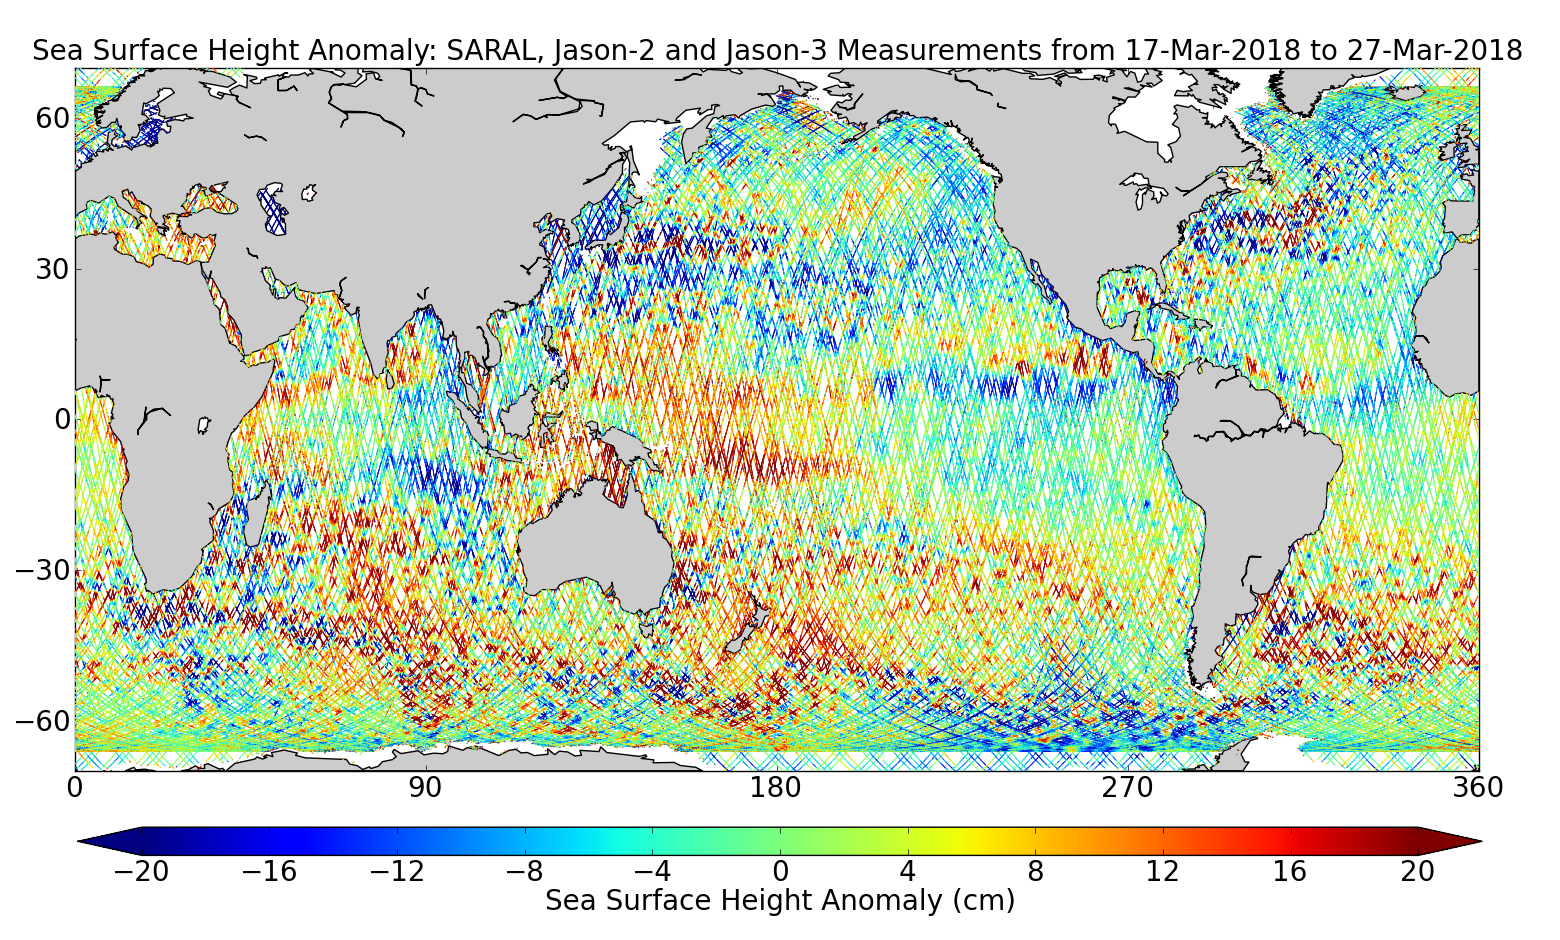 Sea Surface Height Anomaly: SARAL, Jason-2 and Jason-3 Measurements from 17-Mar-2018 to 27-Mar-2018